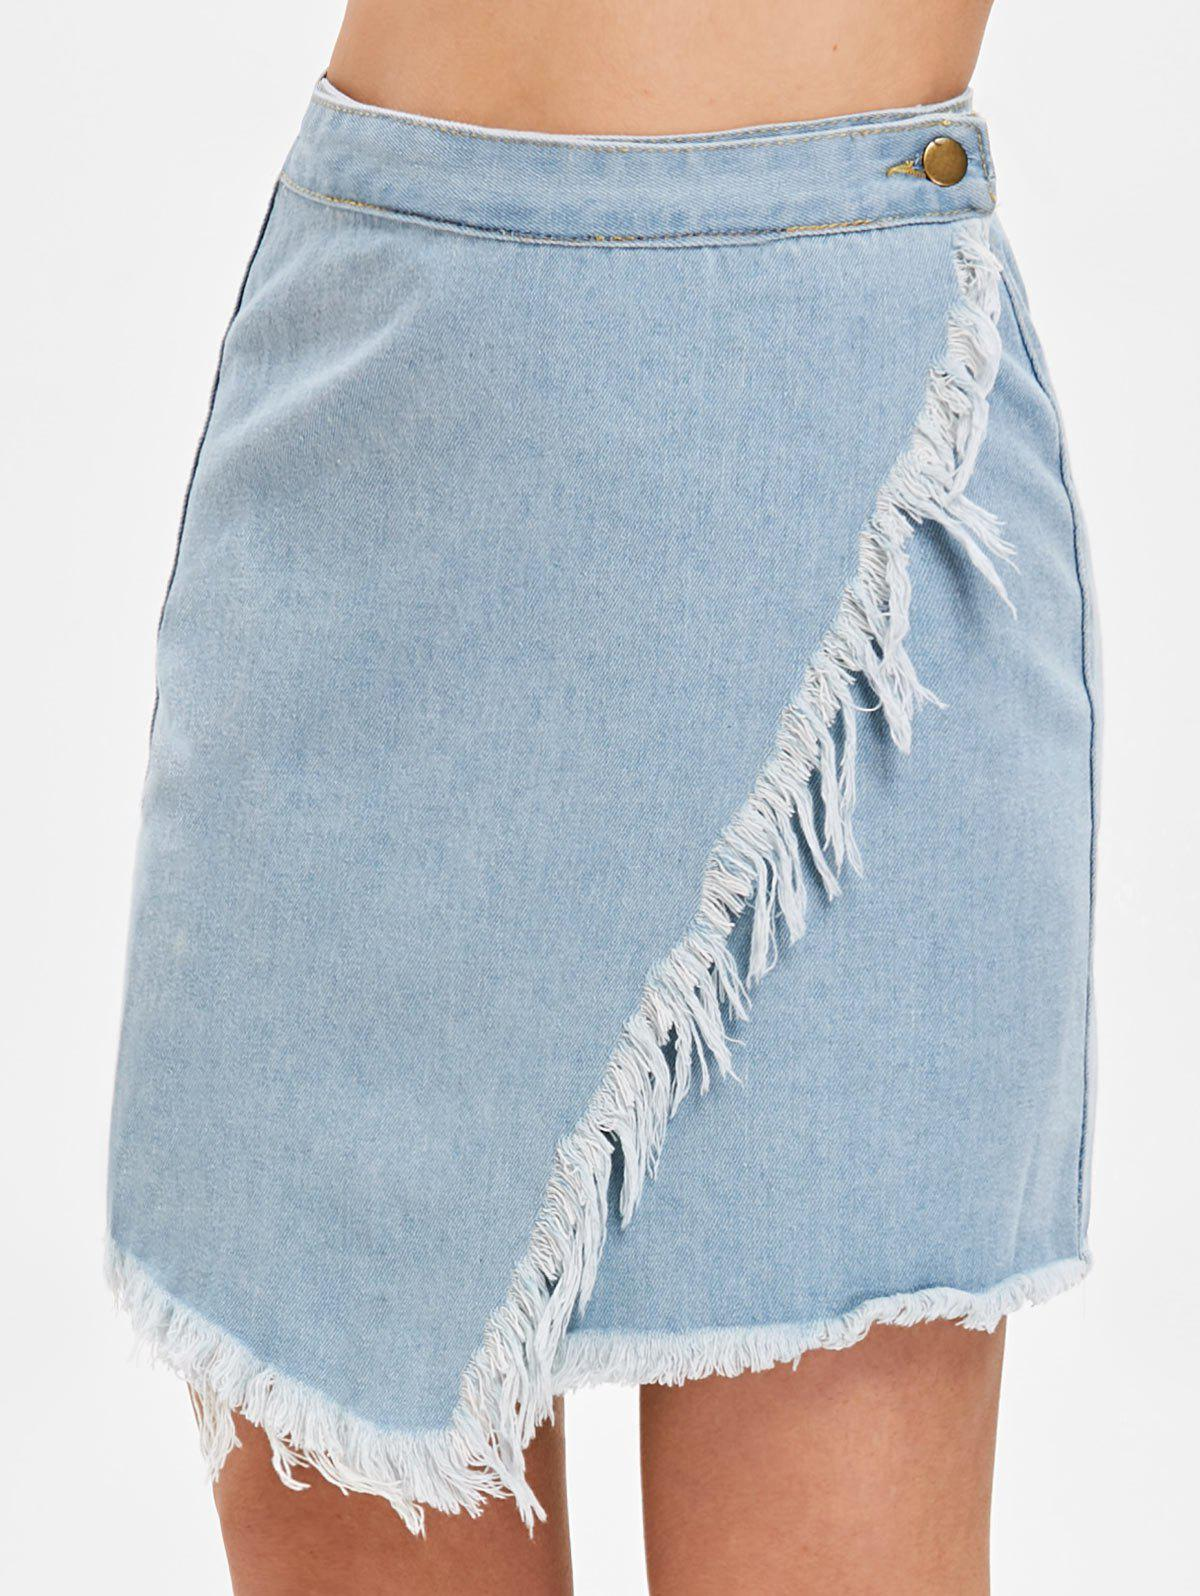 561921cfdba 53% OFF   2019 Asymmetrical Fringe Trim Denim Skirt